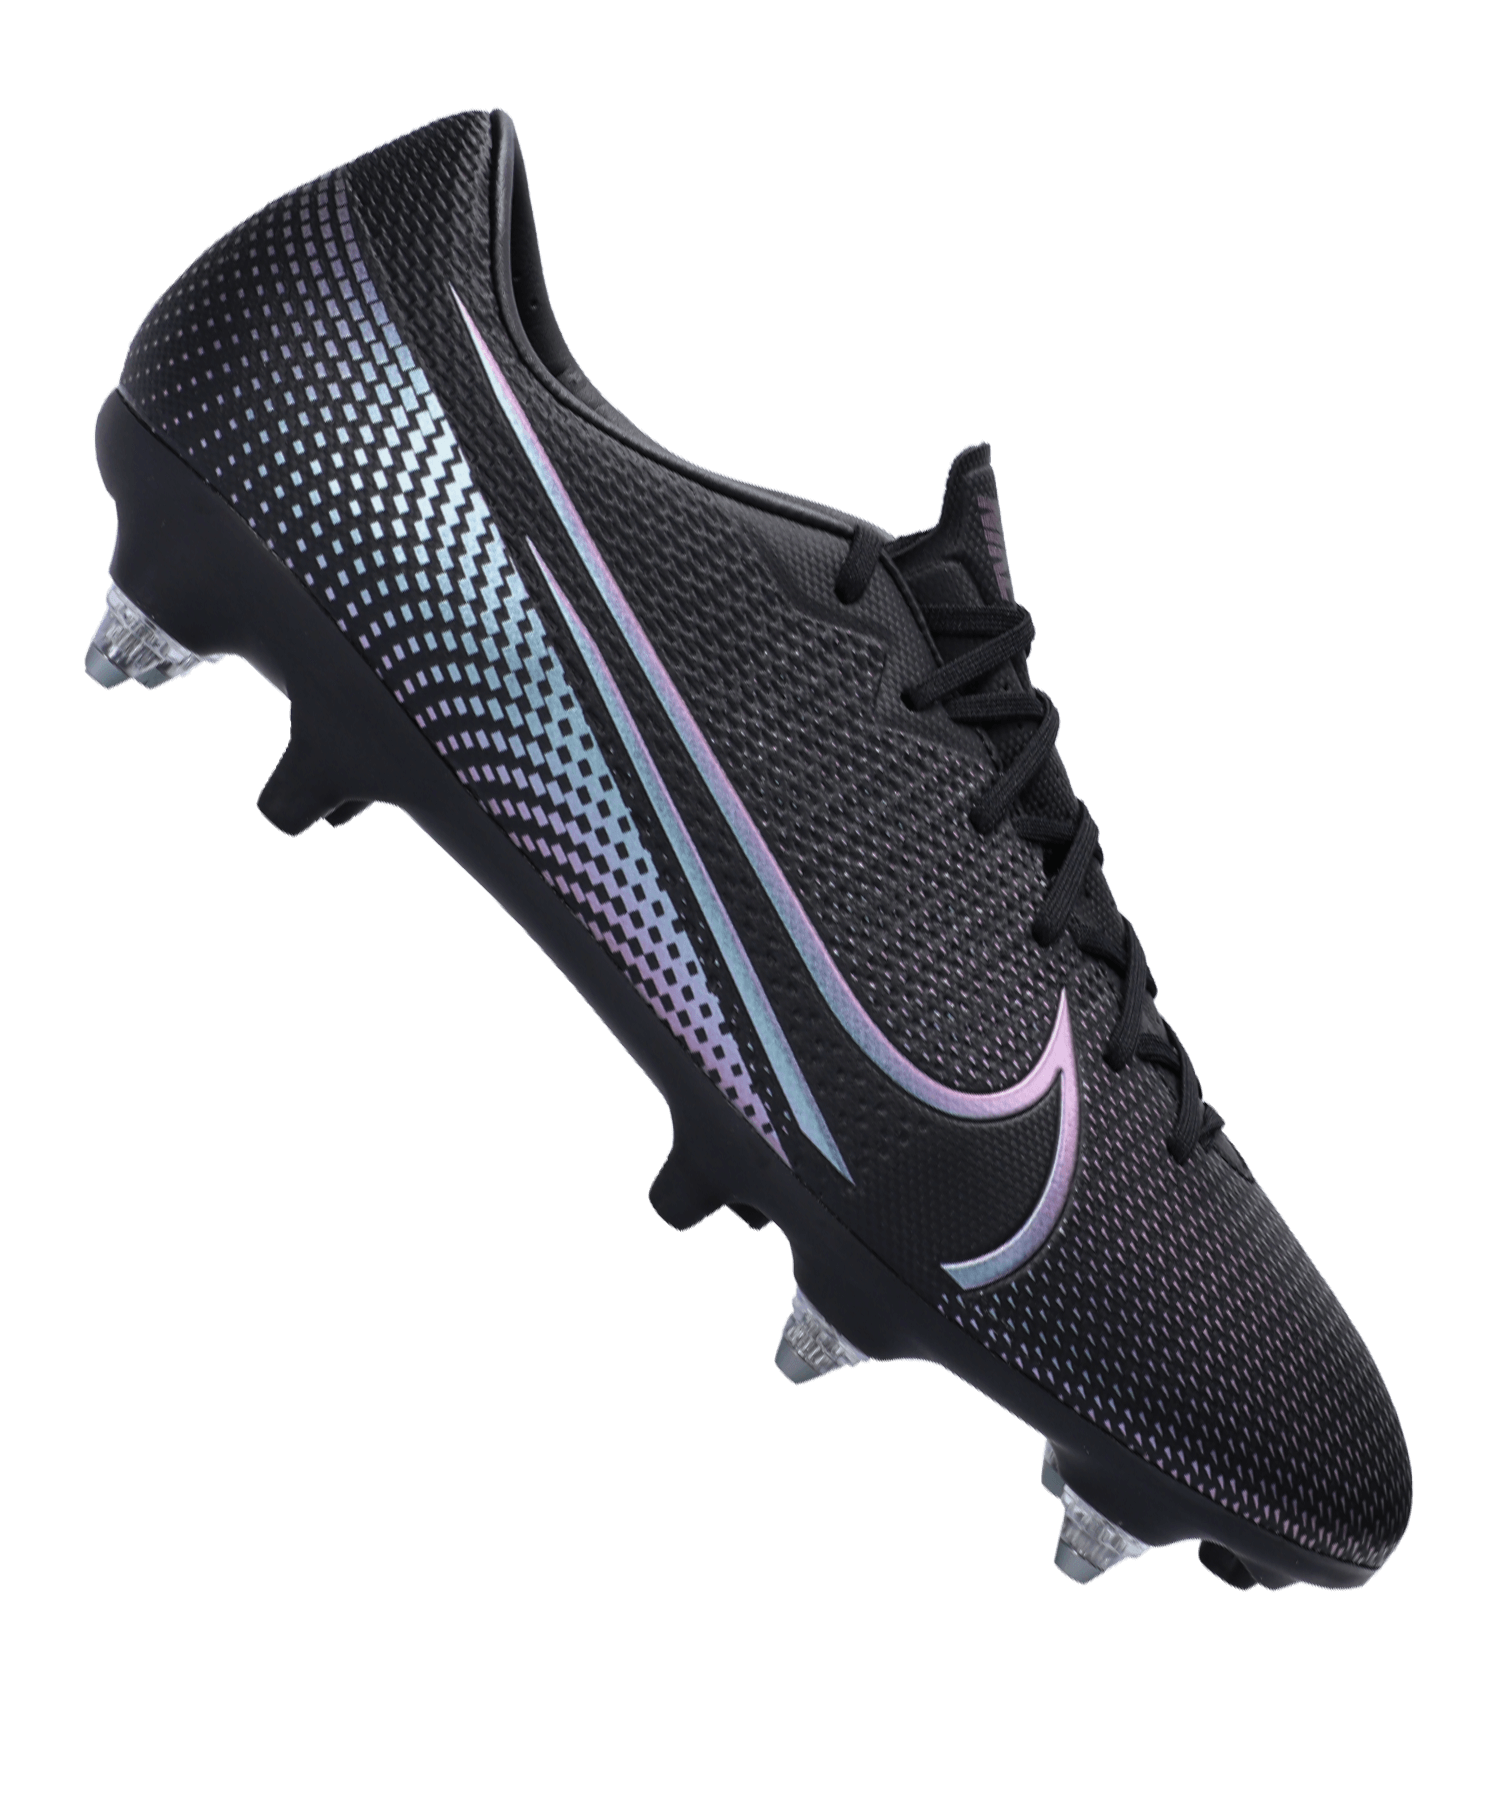 Nike Mercurial Vapor XIII Kinetic Black